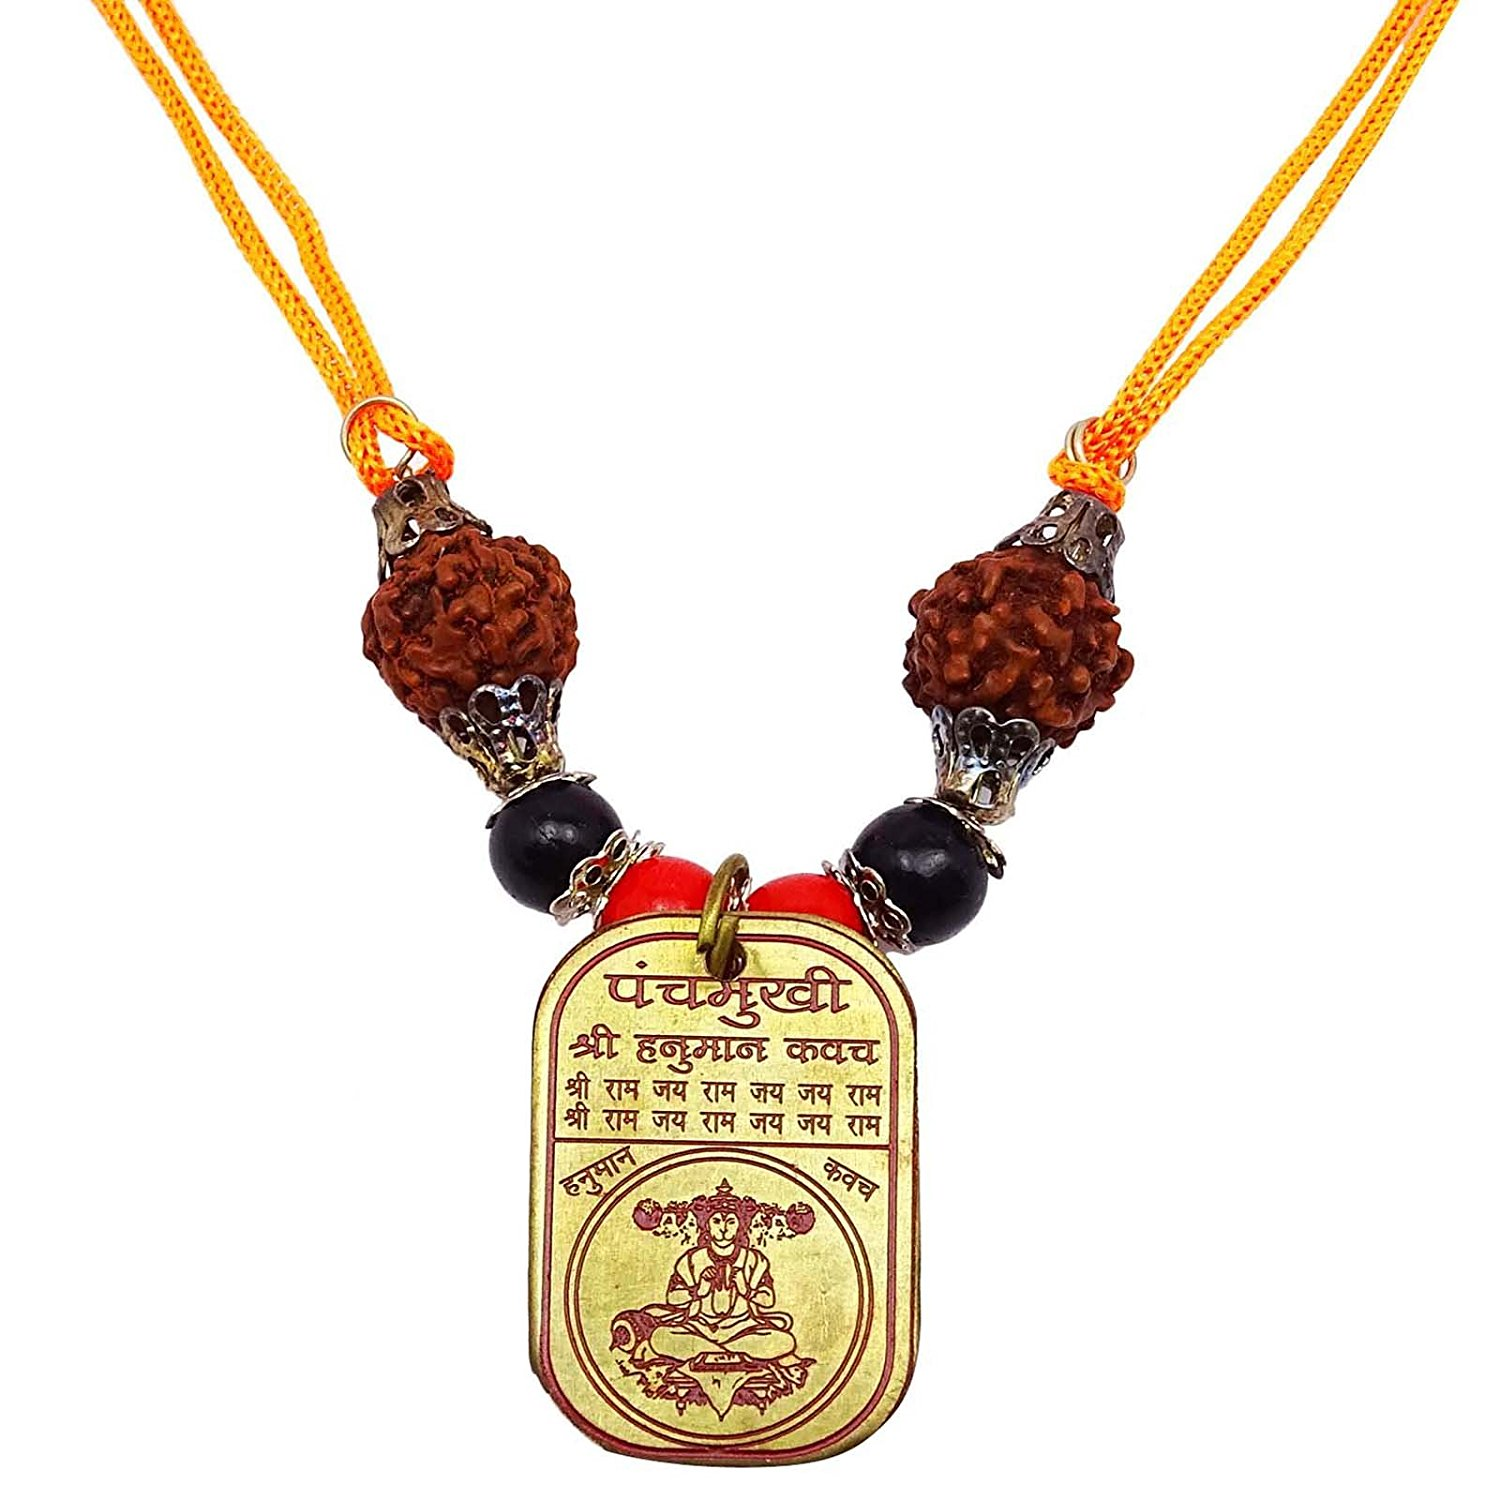 Buy hanuman panchmukhi kavach on sacred thread in cheap price on religious indian siddh shri panchmukh hanuman kavach yantram rudraksh locket vastu mozeypictures Image collections